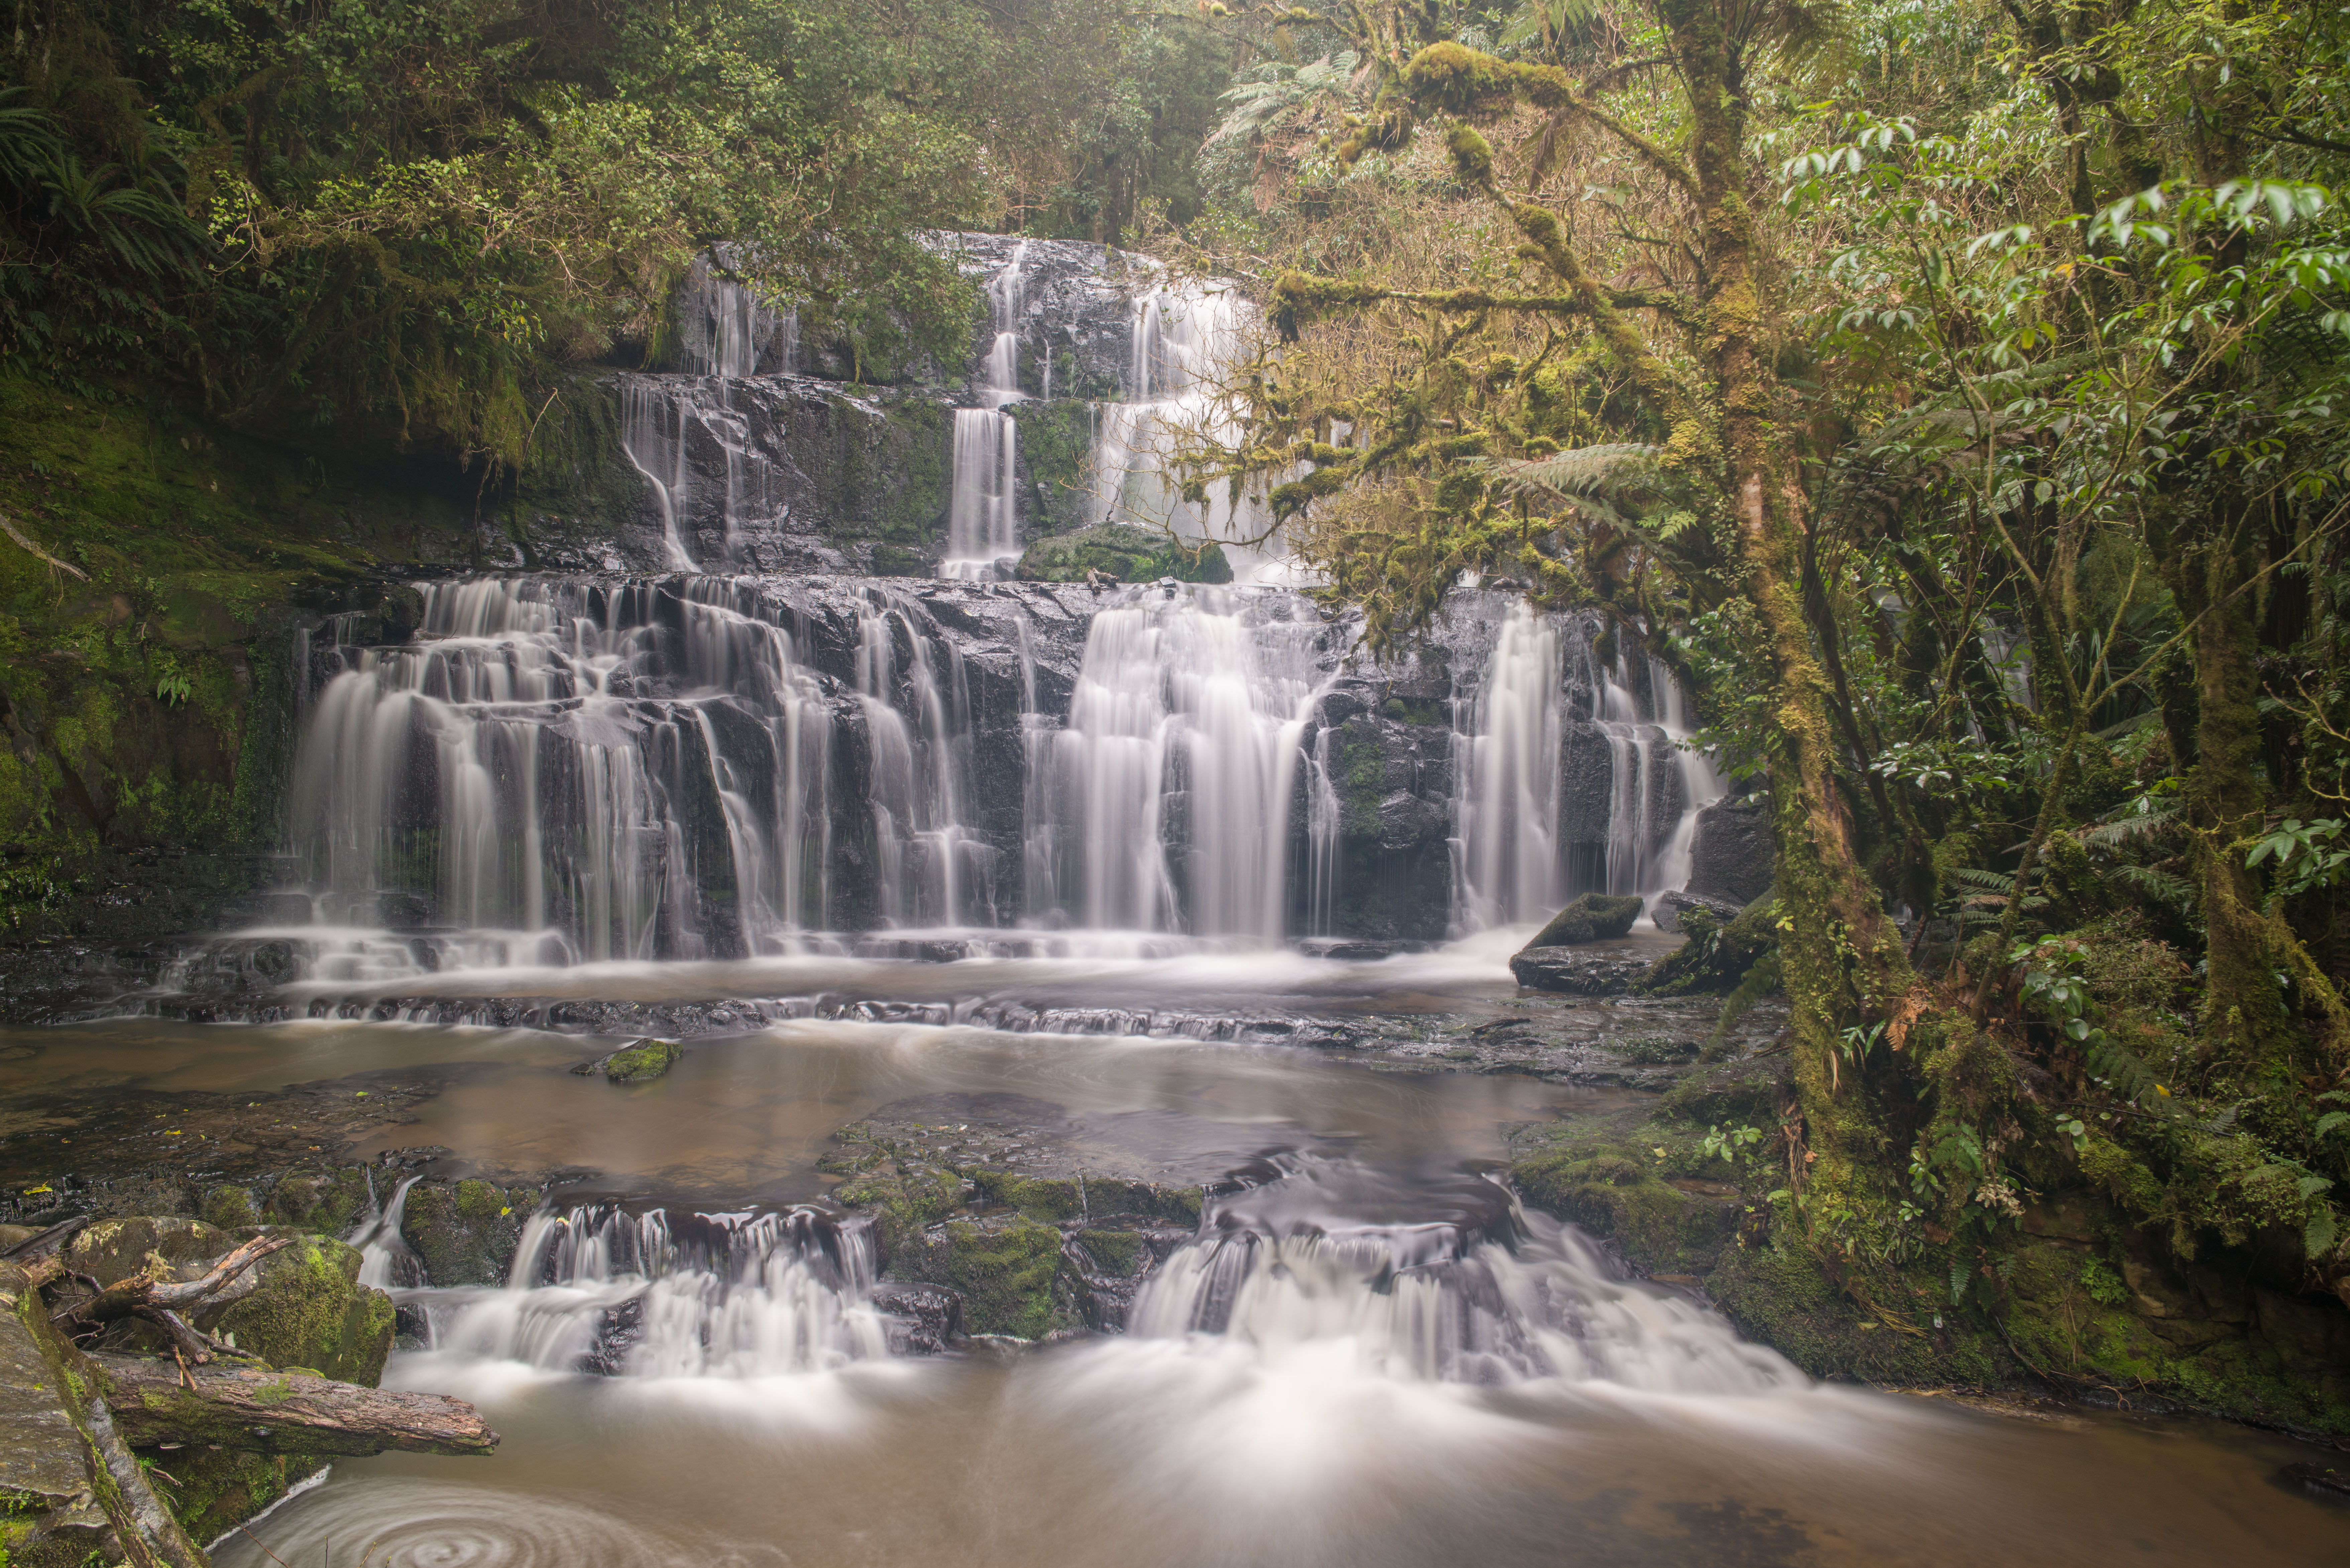 Purakaunui Falls The Catlins Sam Deuchrass 18 3 6045